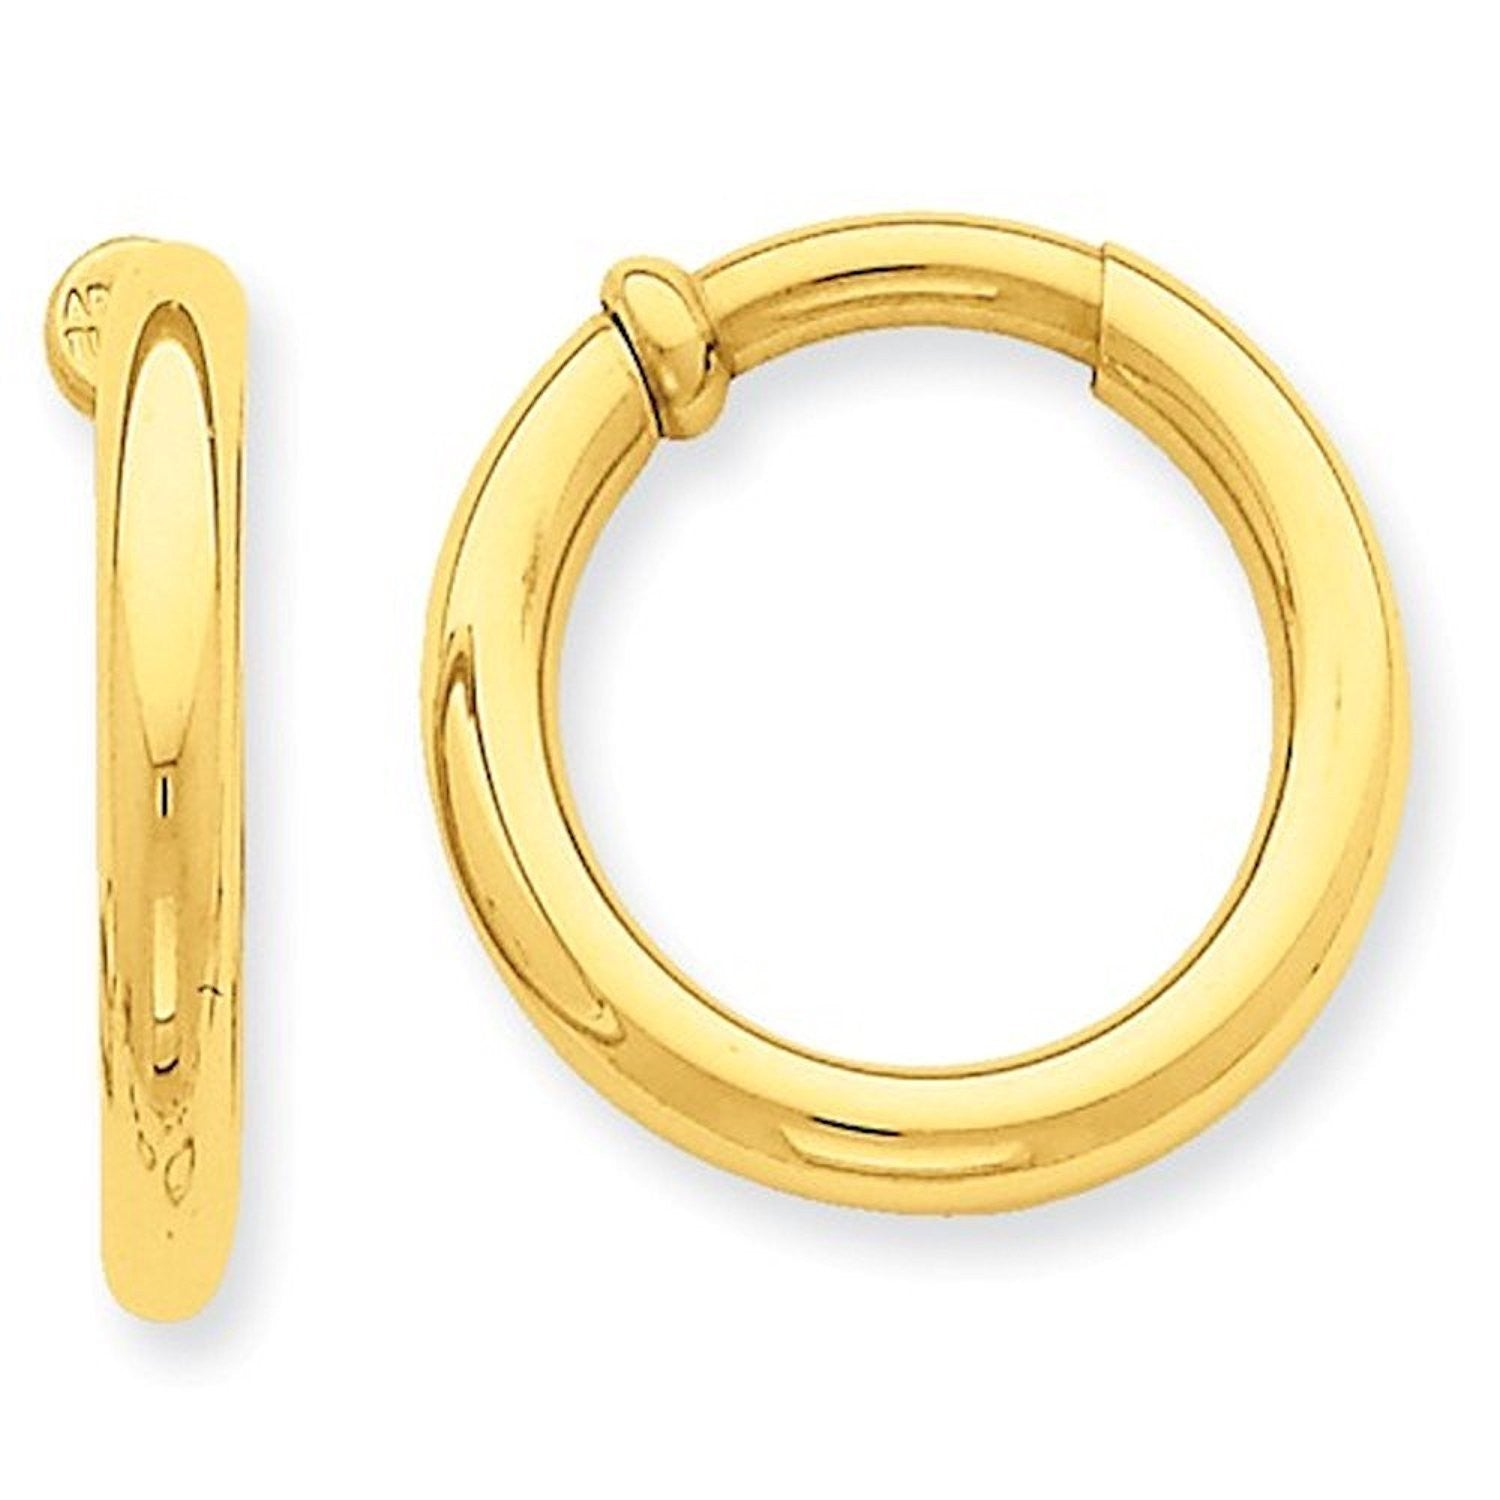 14K Yellow Gold 20mm x 3mm Non Pierced Round Hoop Earrings